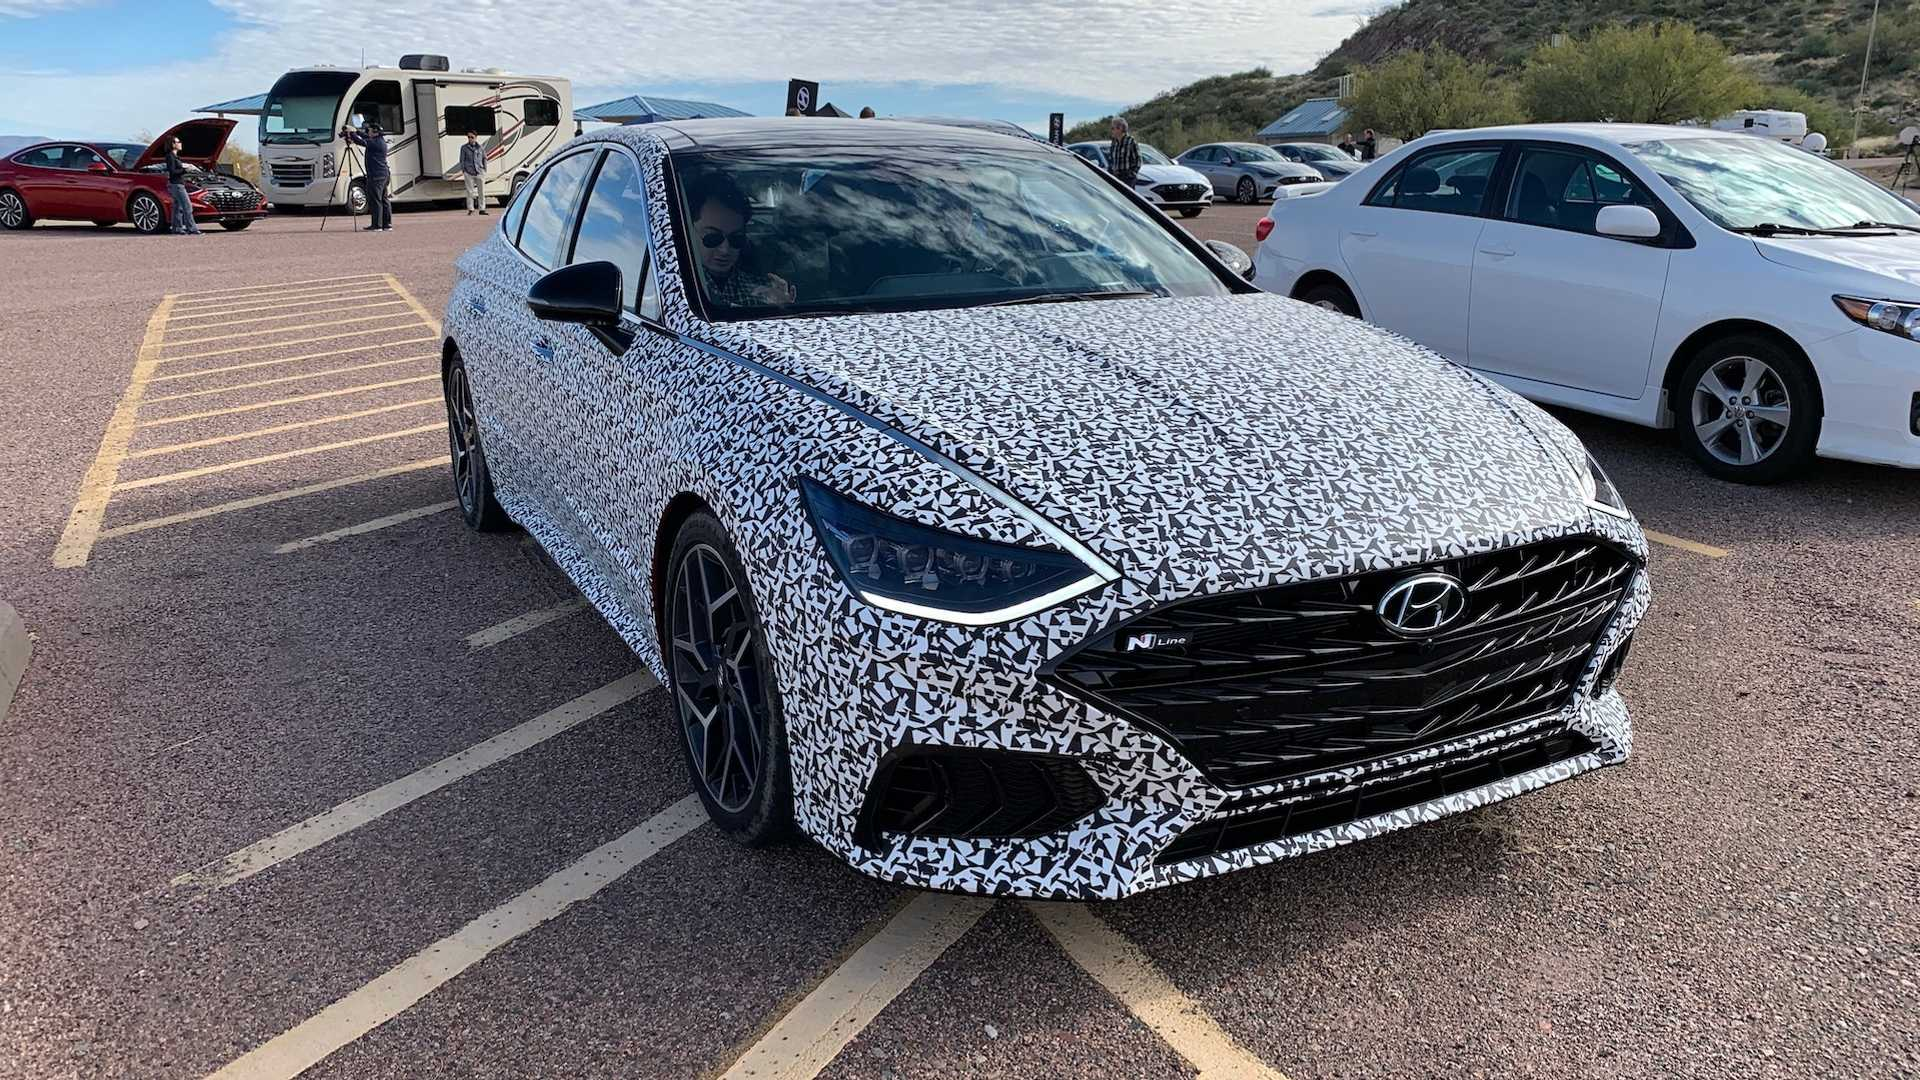 Hyundai Sonata N-Line to be Launched on April 20th